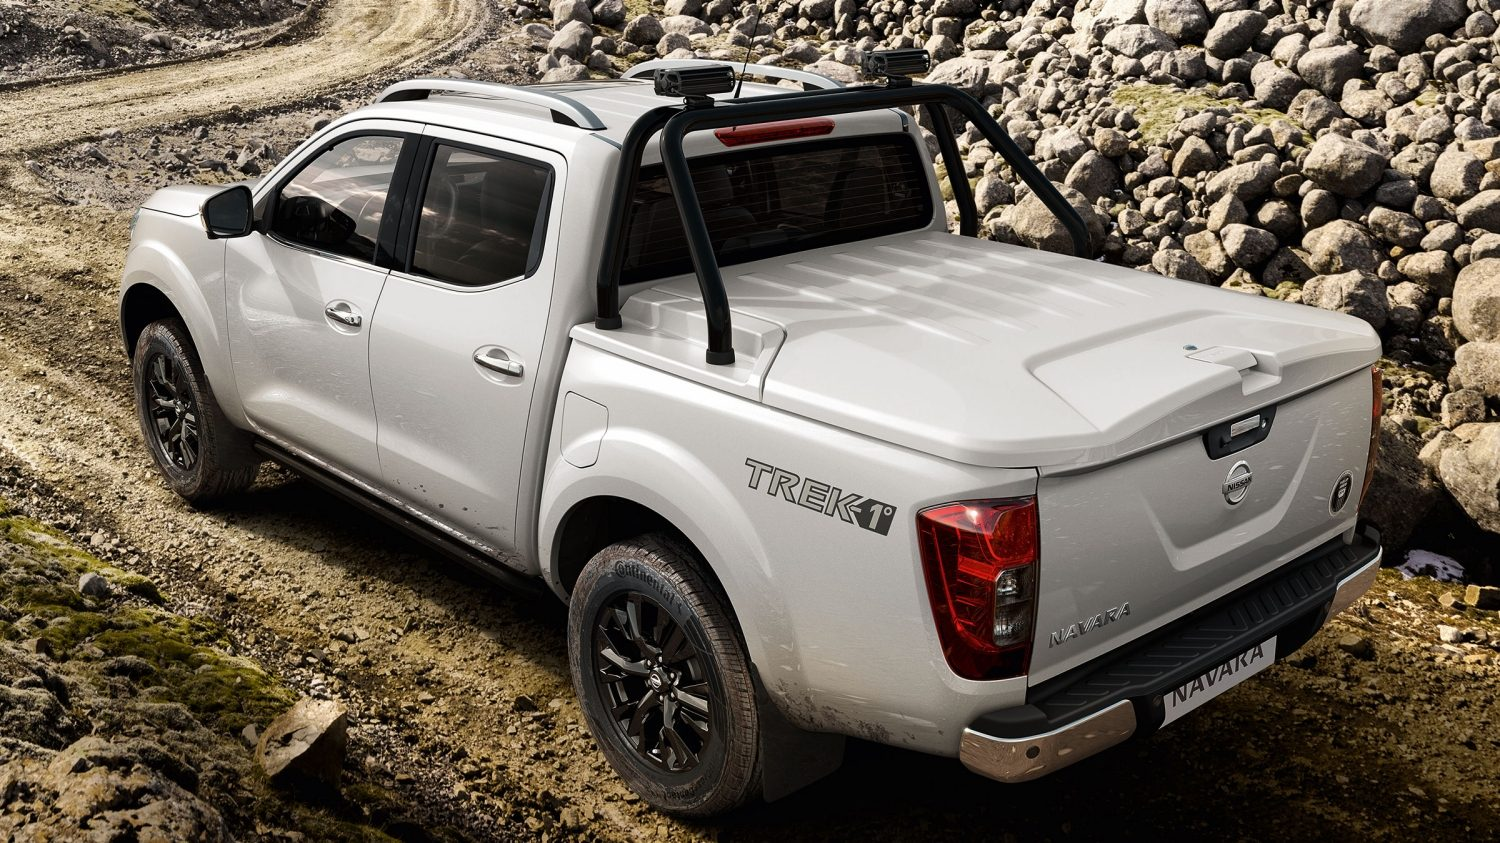 nissan navara s rie limit e pick up 4x4 nissan. Black Bedroom Furniture Sets. Home Design Ideas